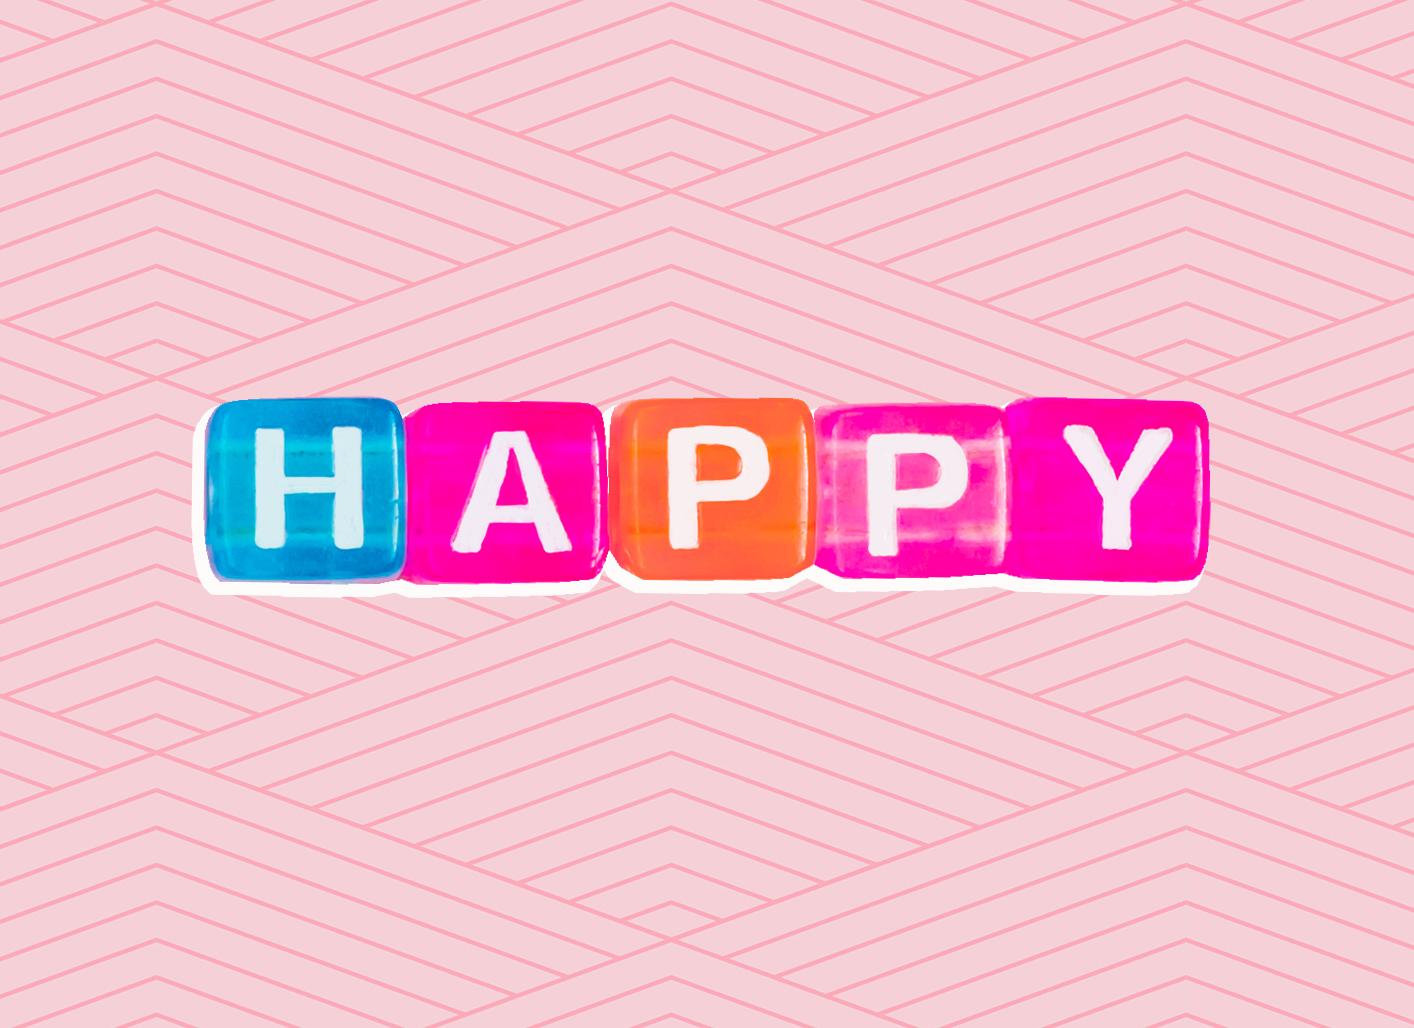 Cutting These 4 Words From Your Vocabulary Could Make You Happier